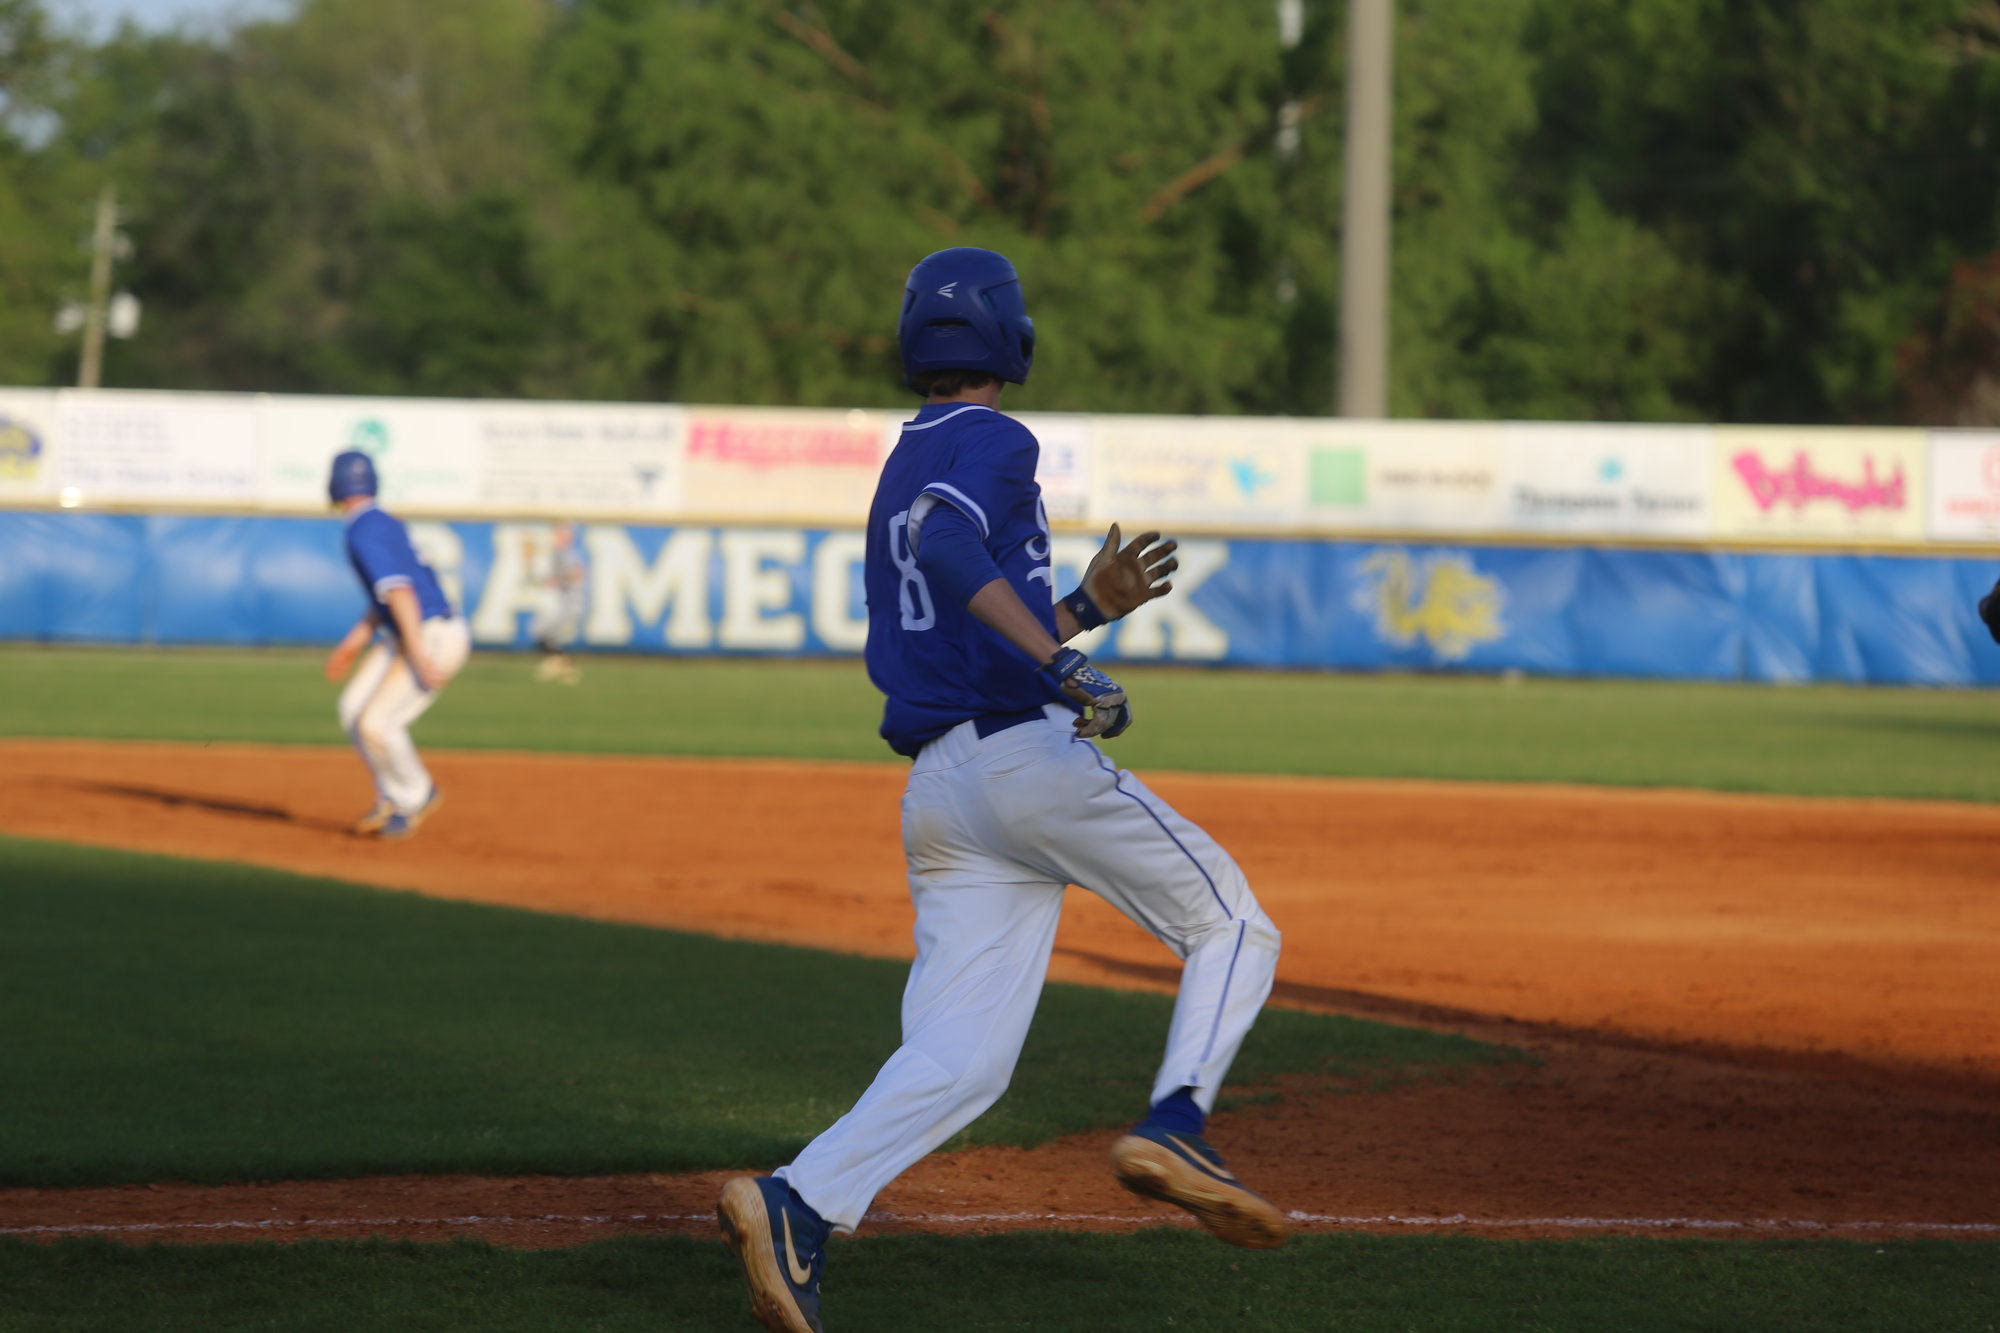 Sumter's Drake Thames runs the bases.